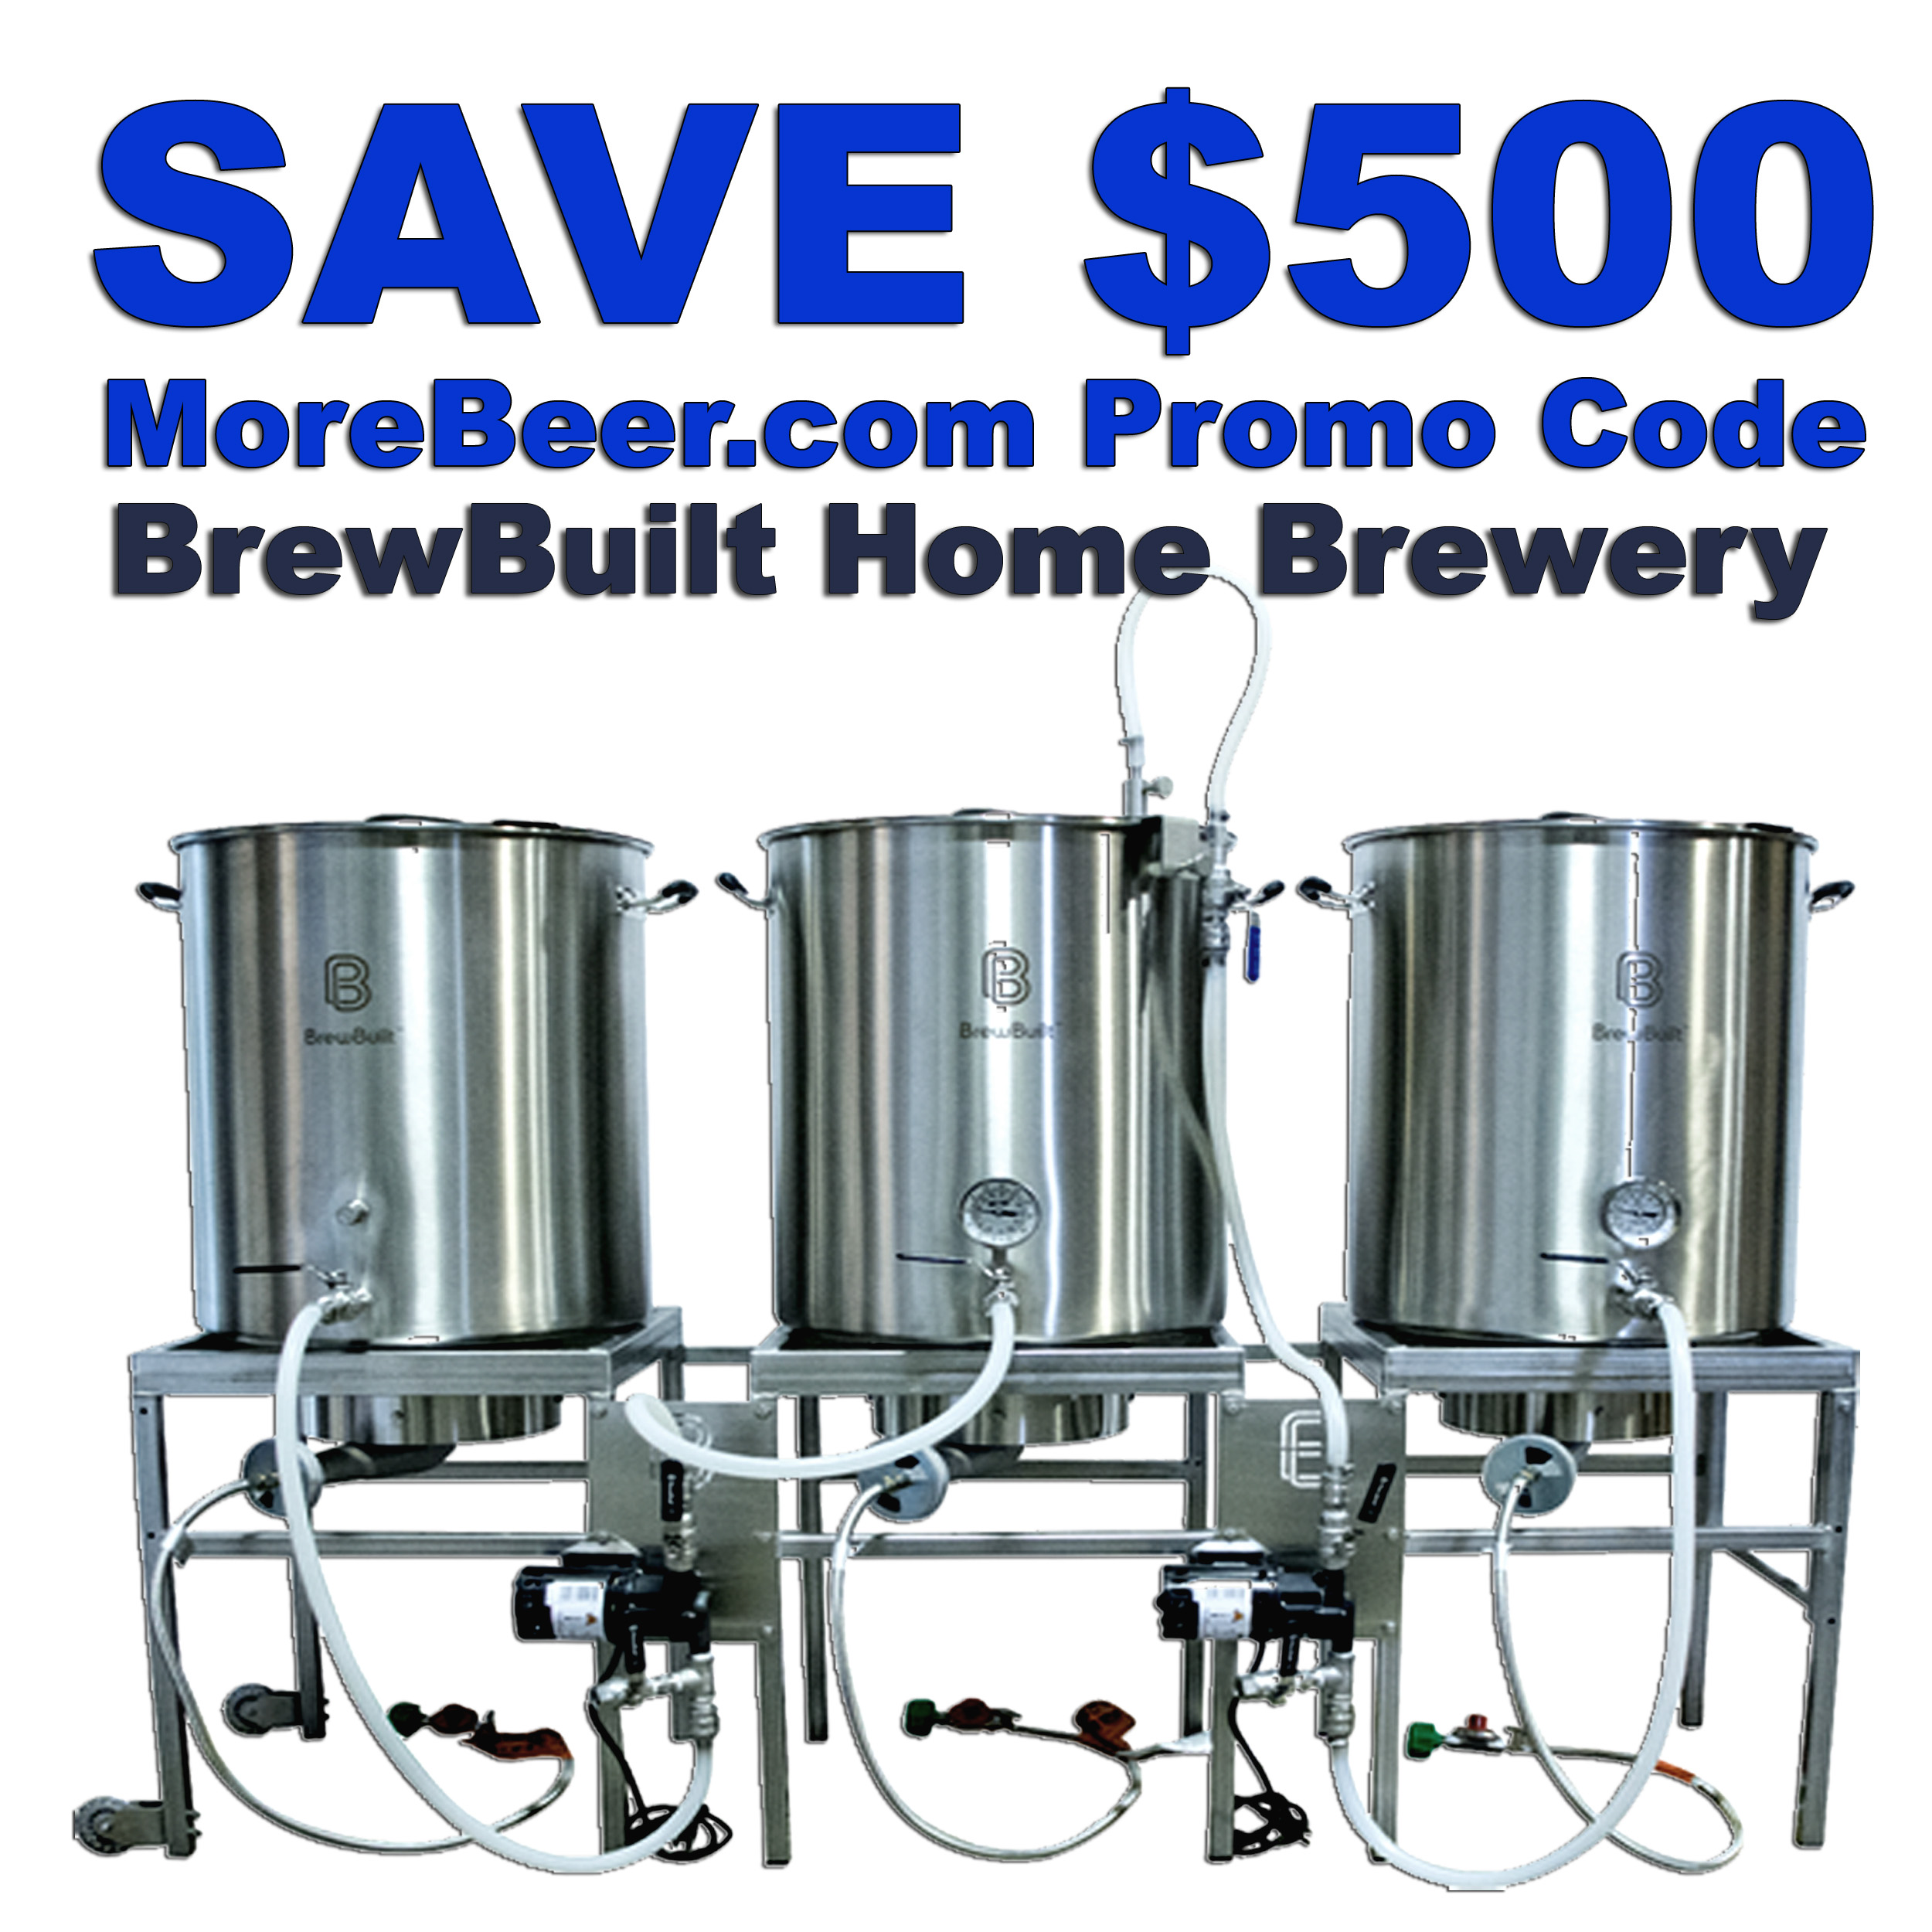 Save $500 On A BrewBuilt Home Beer Brewing Brewery Coupon Code